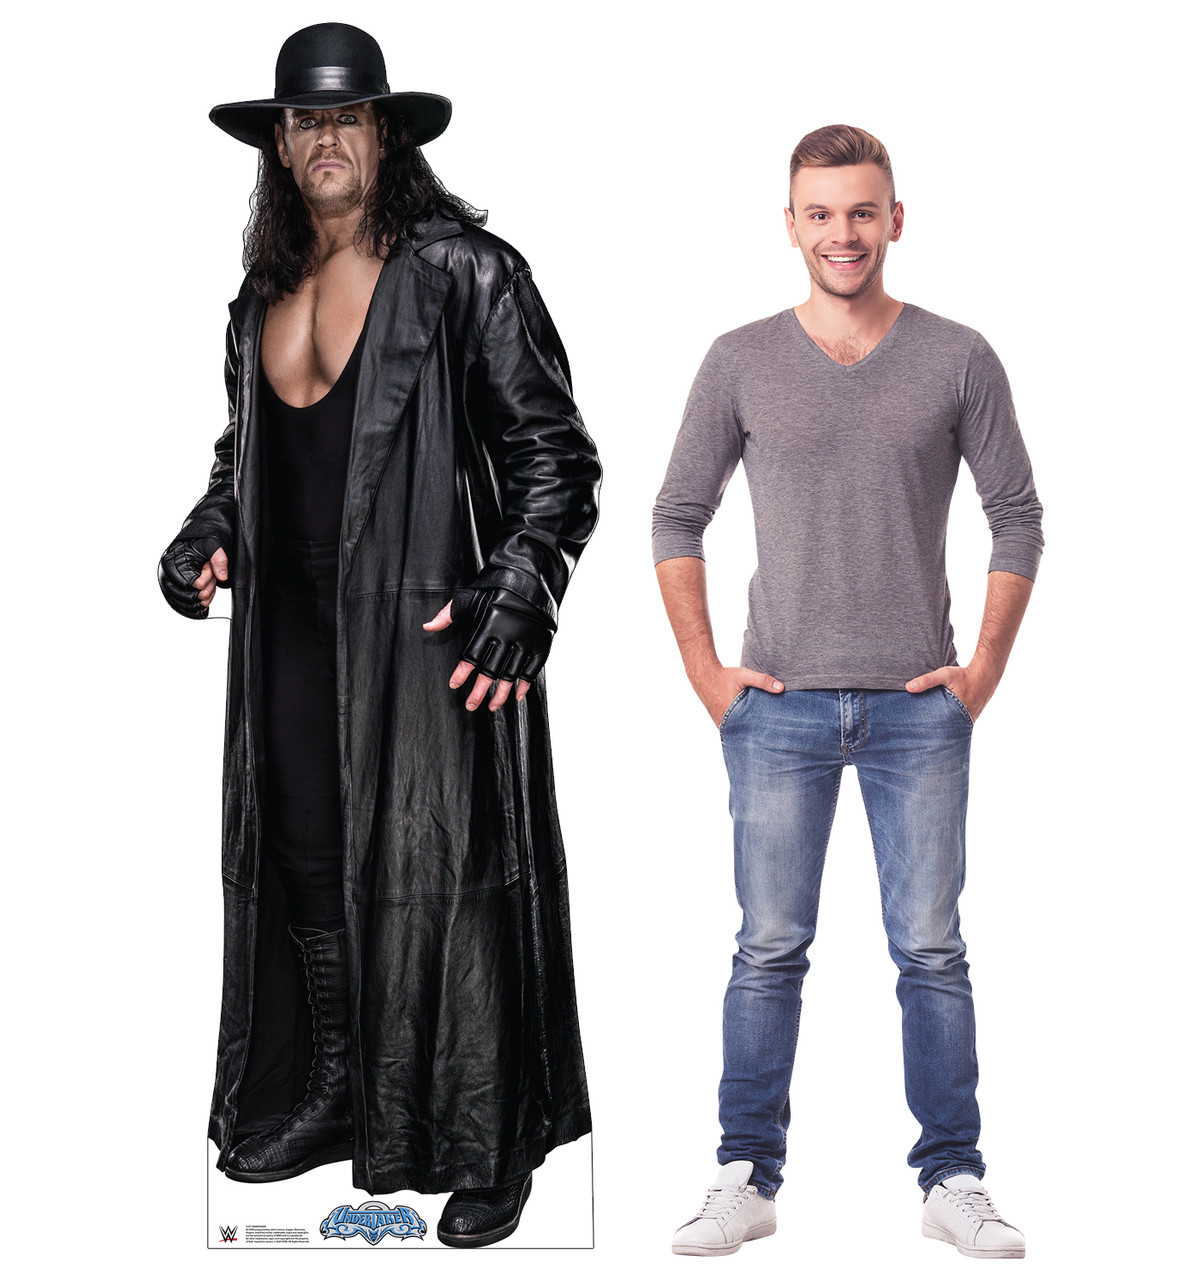 Life-size cardboard standee of the Undertaker from WWE with model.